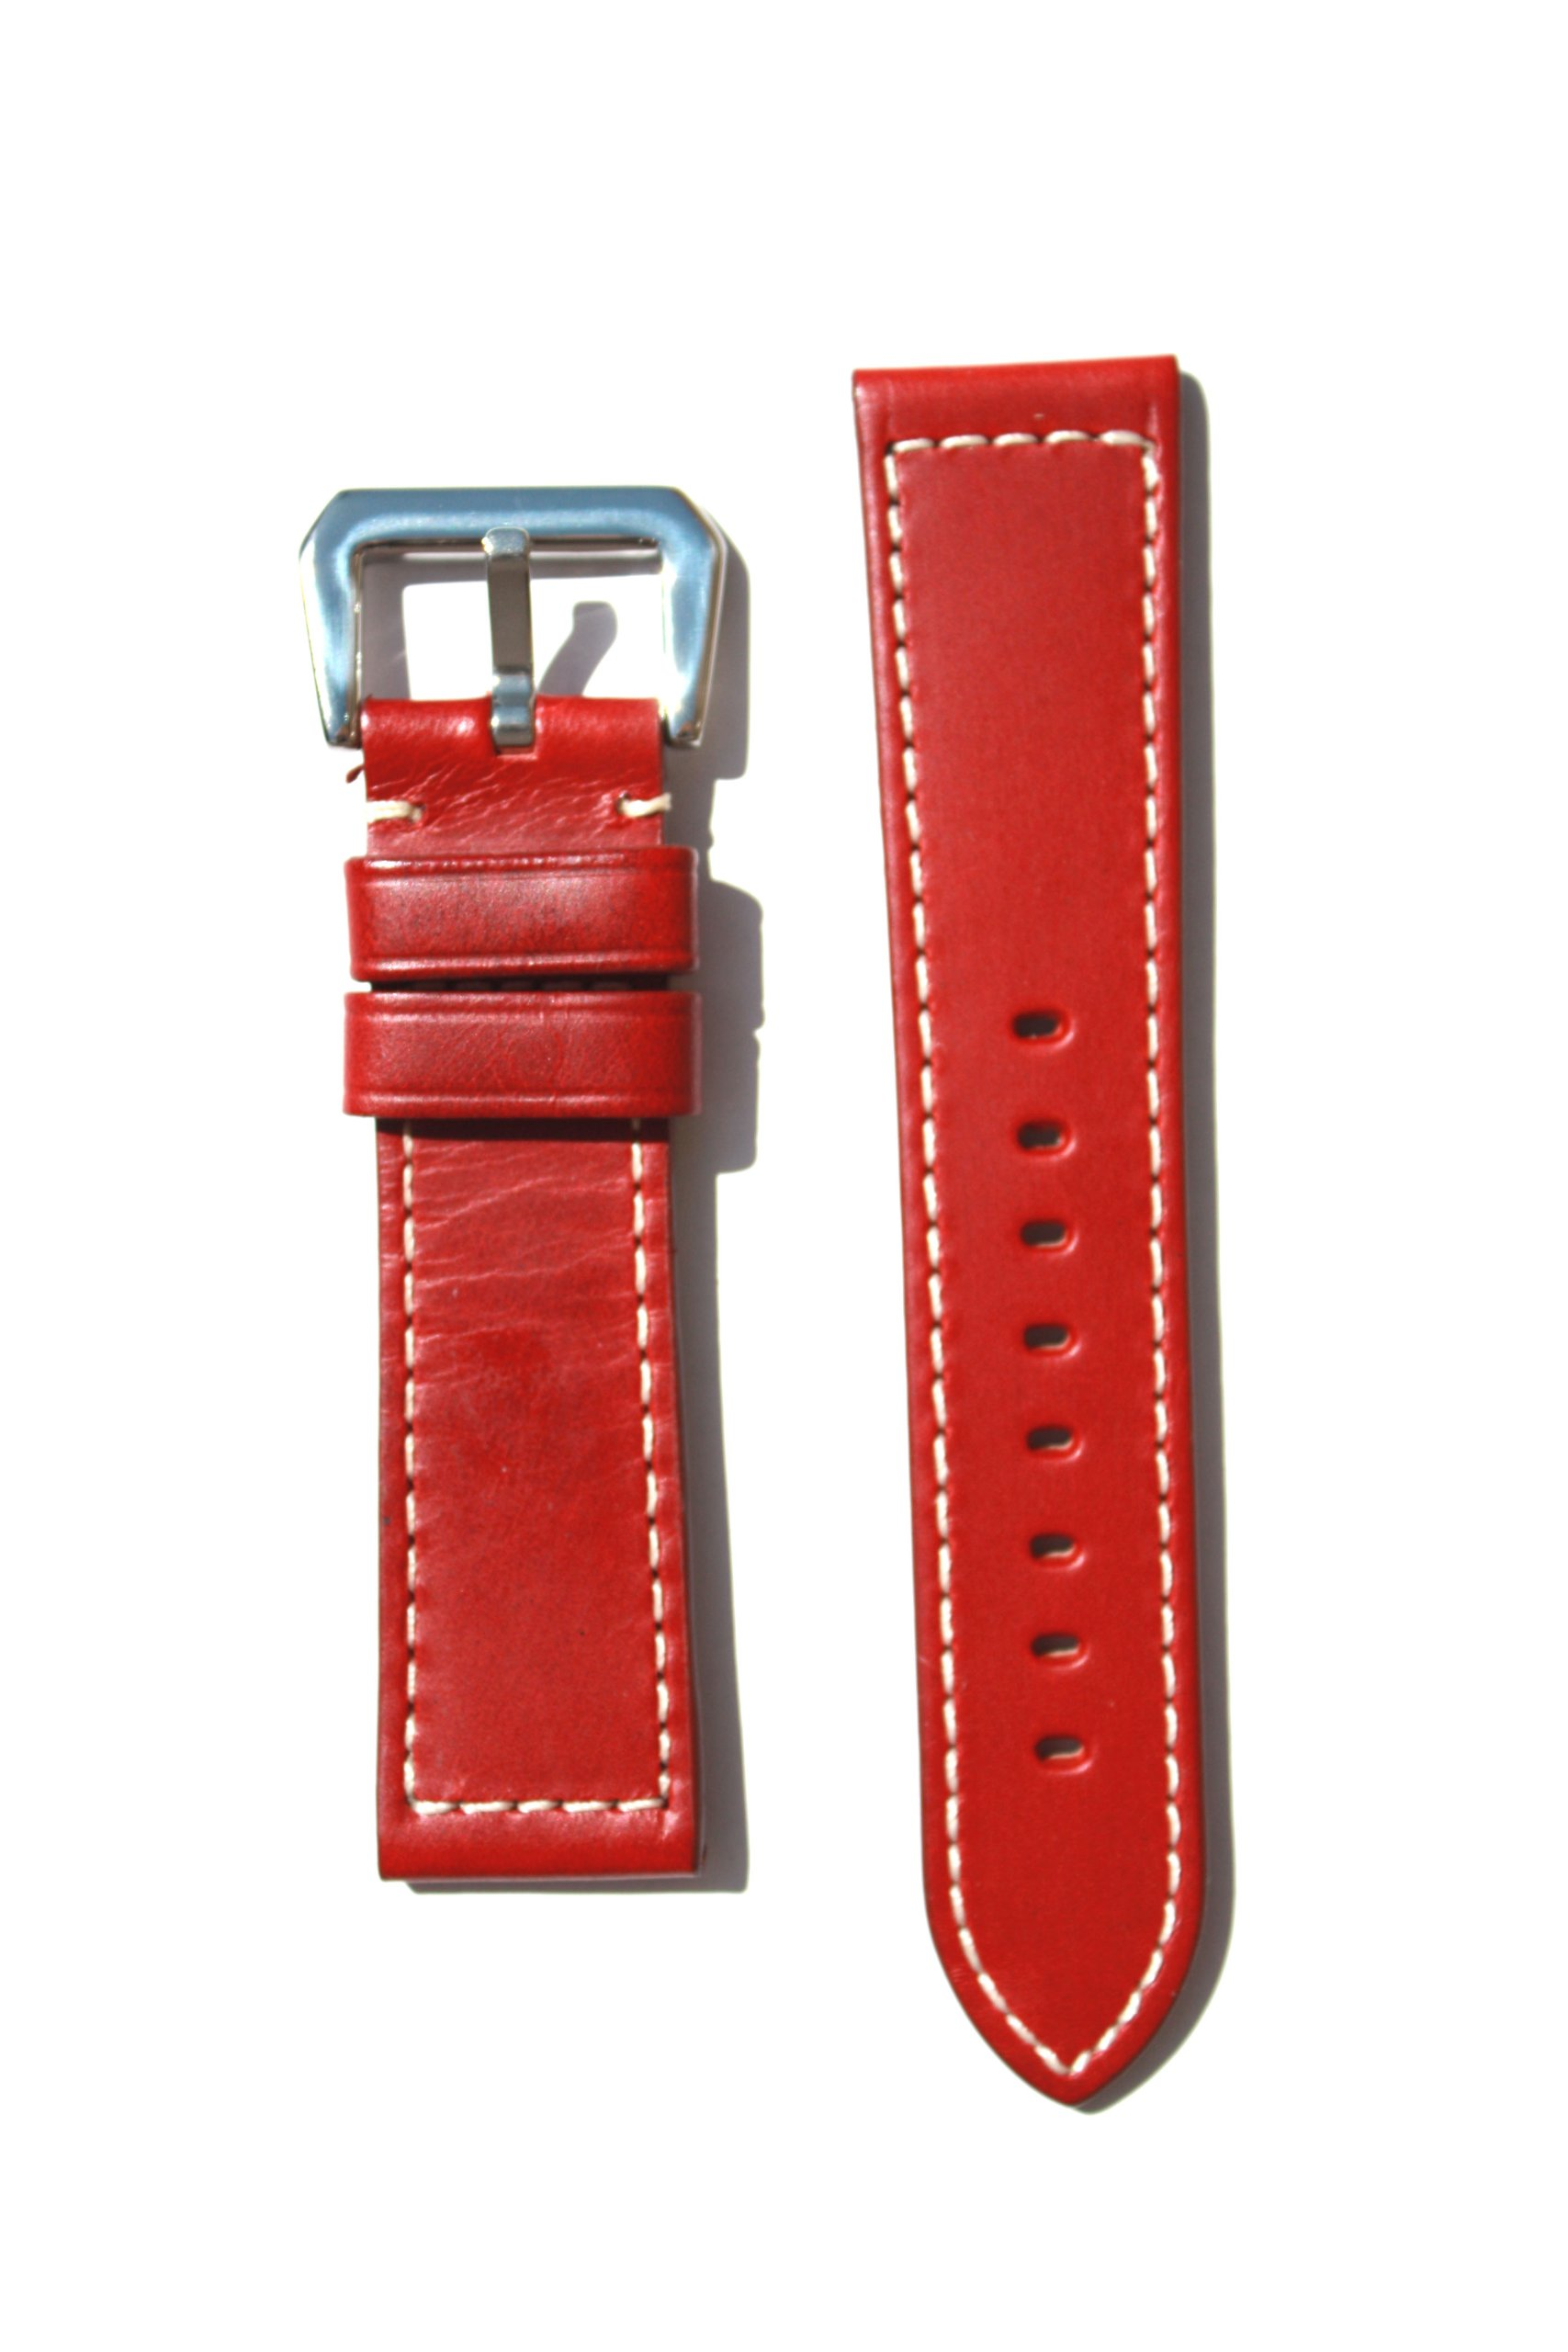 PANERAI Style 24mm Red Watchband with Heavy Original Design S/S Buckle